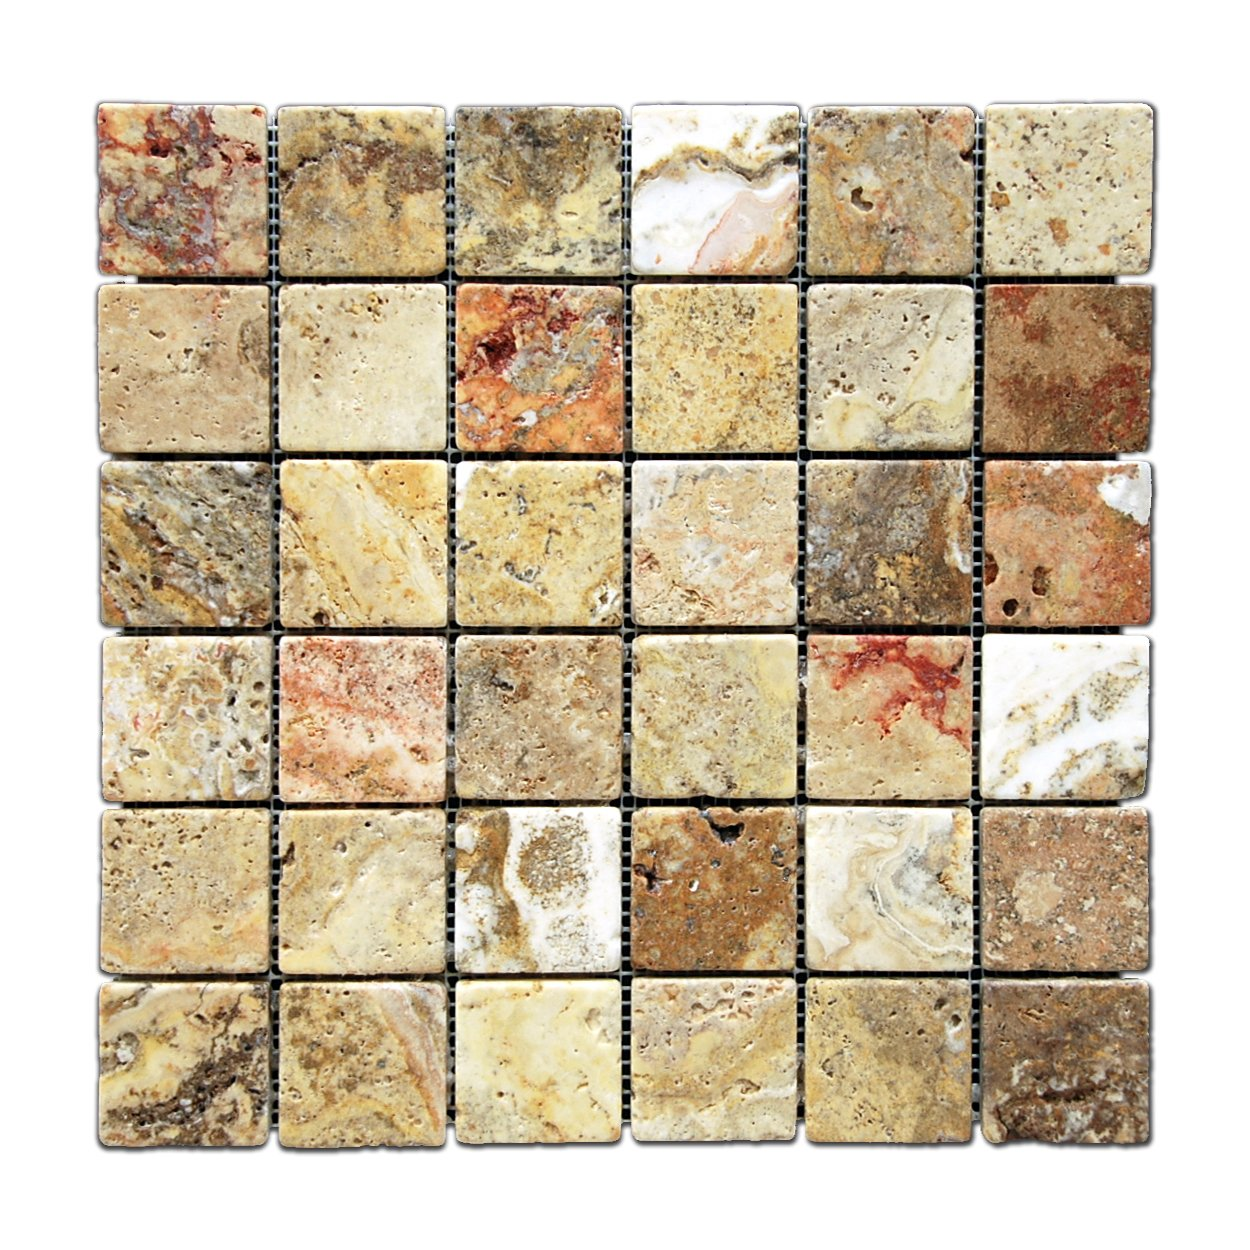 Scabos 2 x 2 tumbled travertine mosaic tile 6 x 6 sample scabos 2 x 2 tumbled travertine mosaic tile 6 x 6 sample marble tiles amazon dailygadgetfo Images